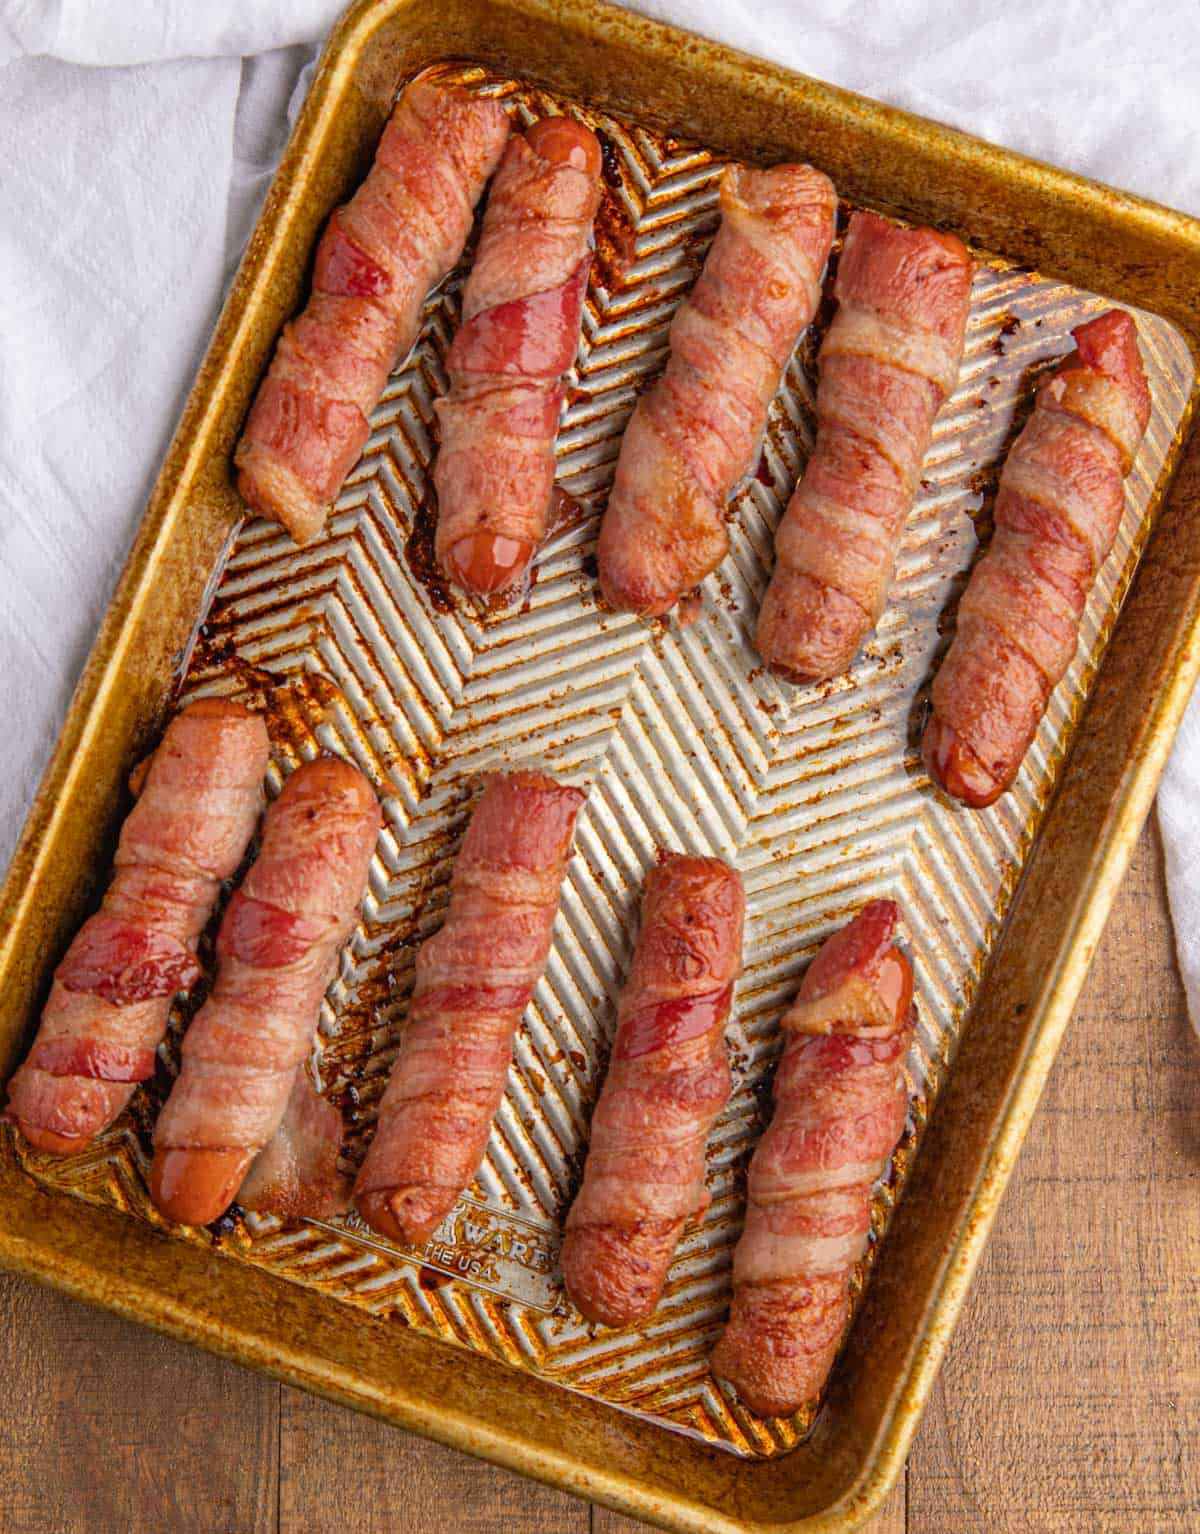 Bacon Wrapped Hot Dogs on Tray